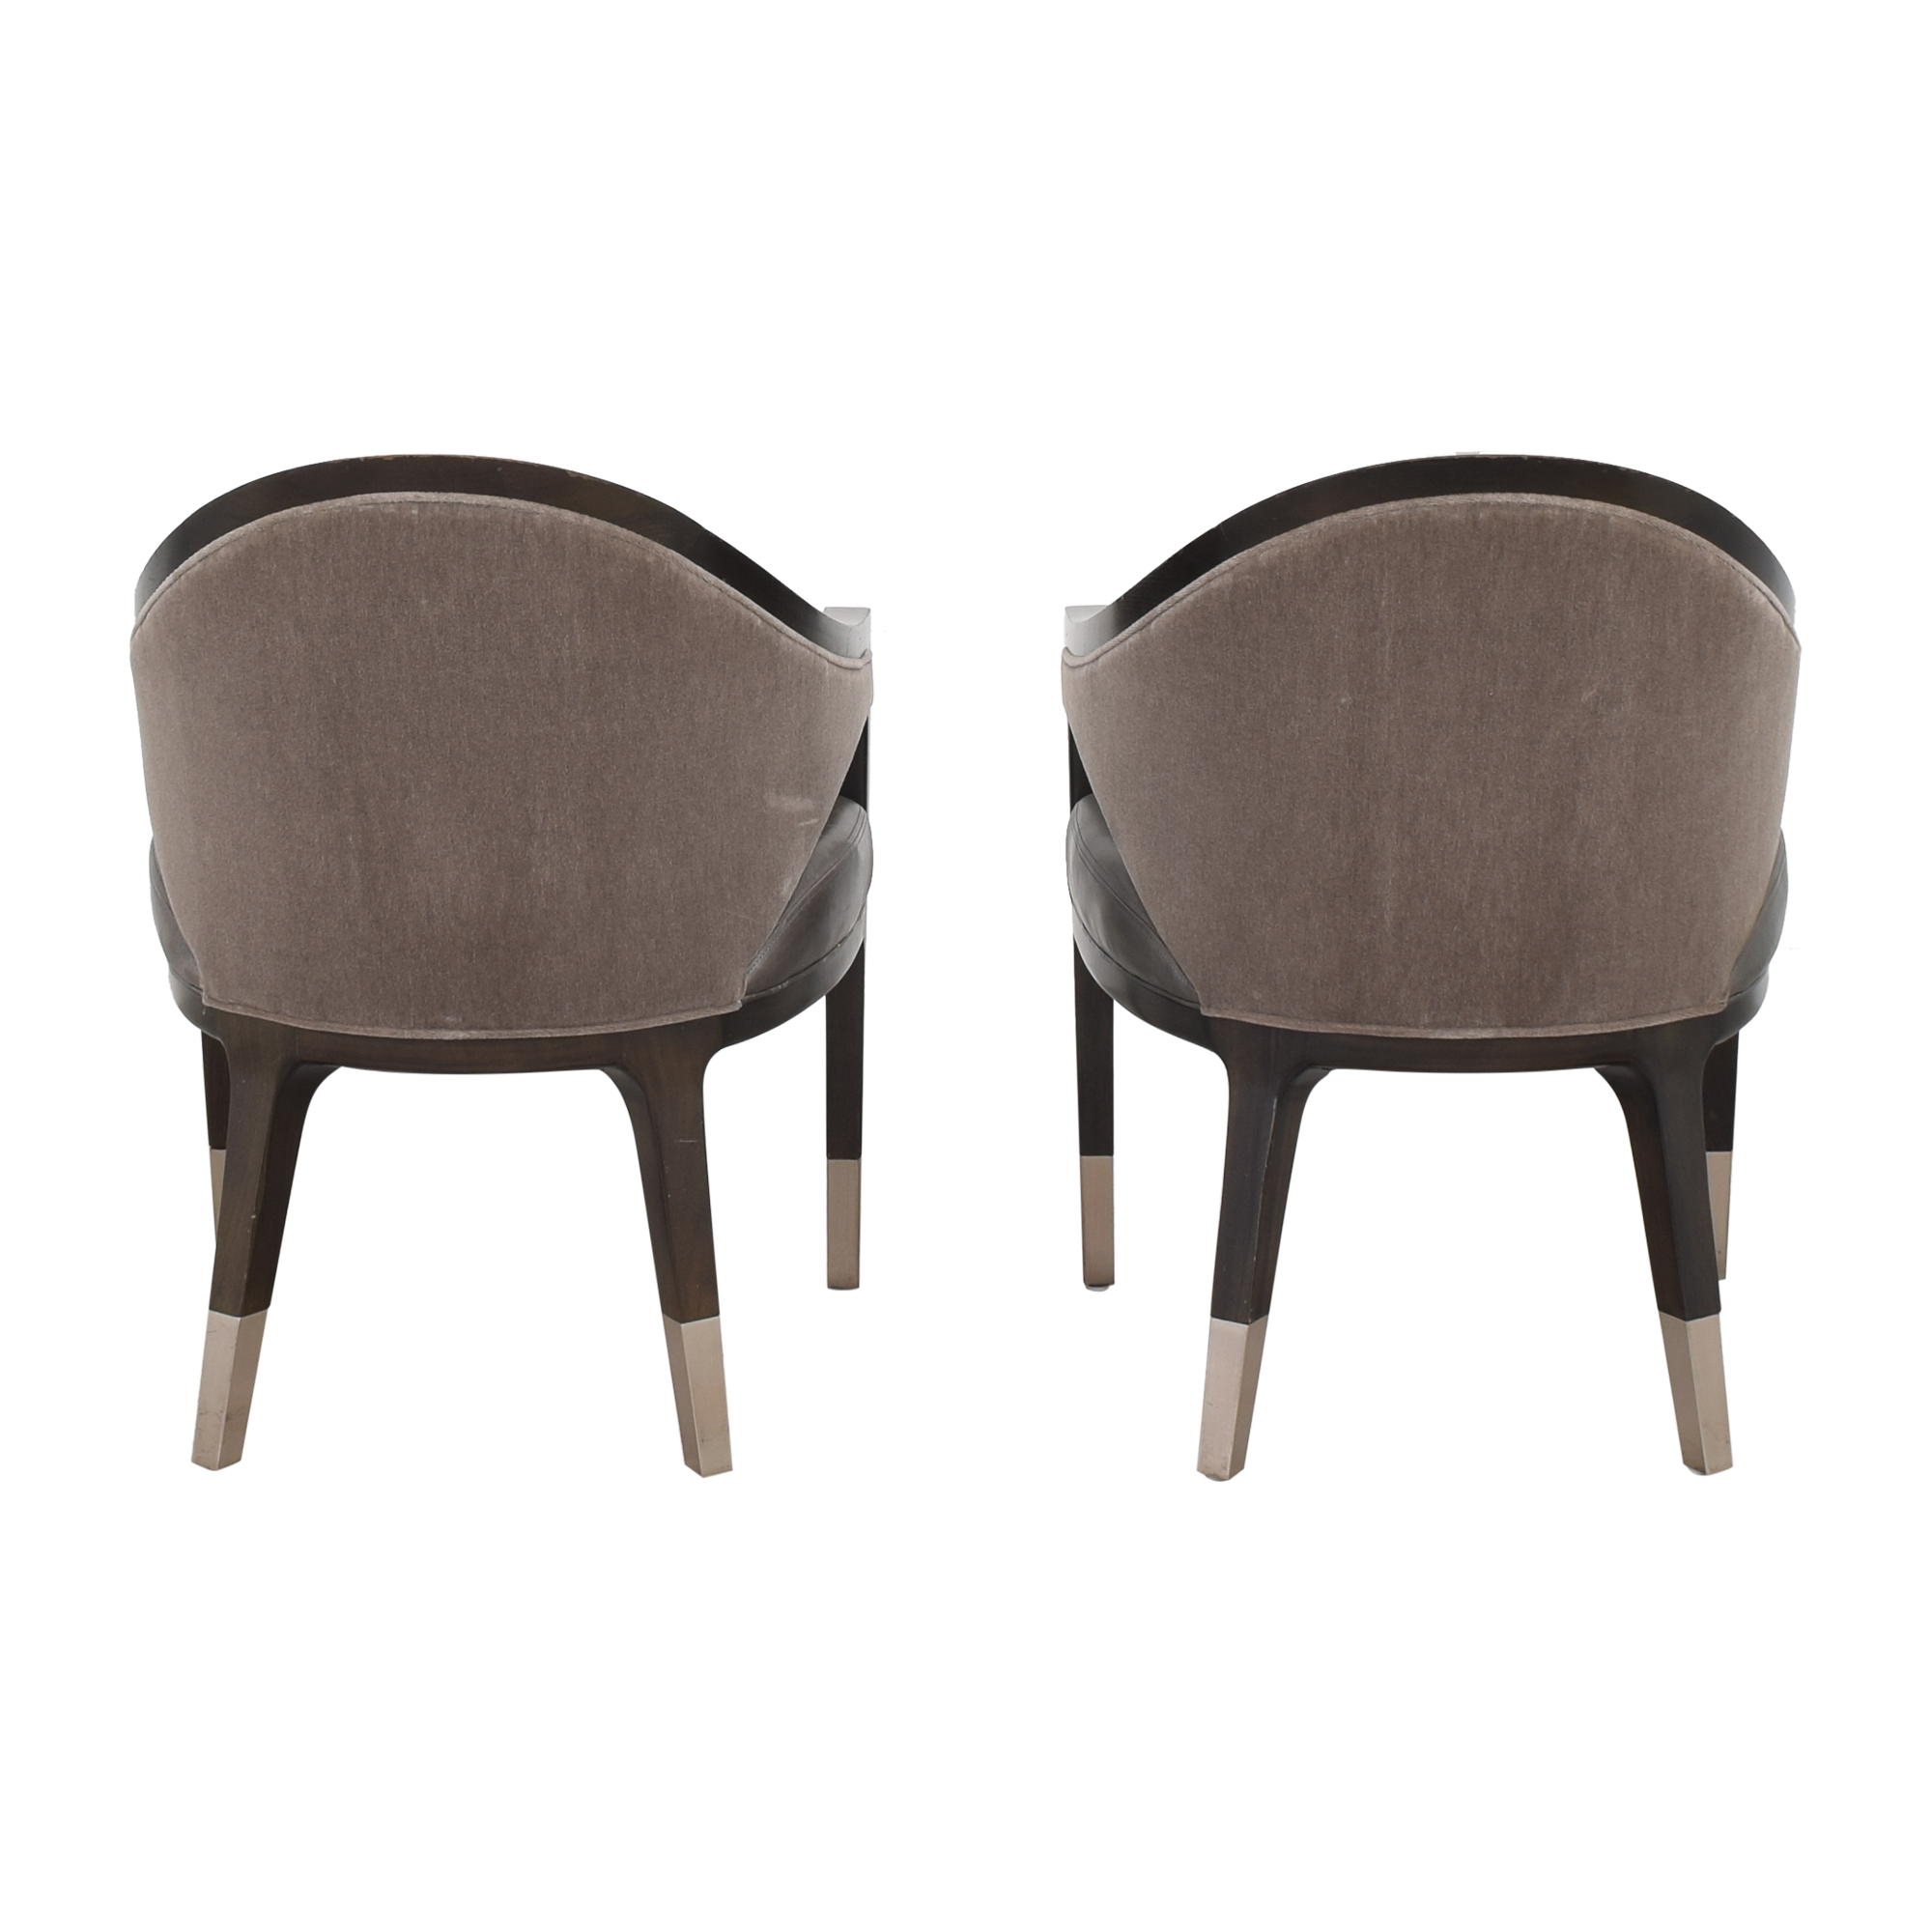 Allied Works Eleven Madison Park Dining Room Chairs / Dining Chairs